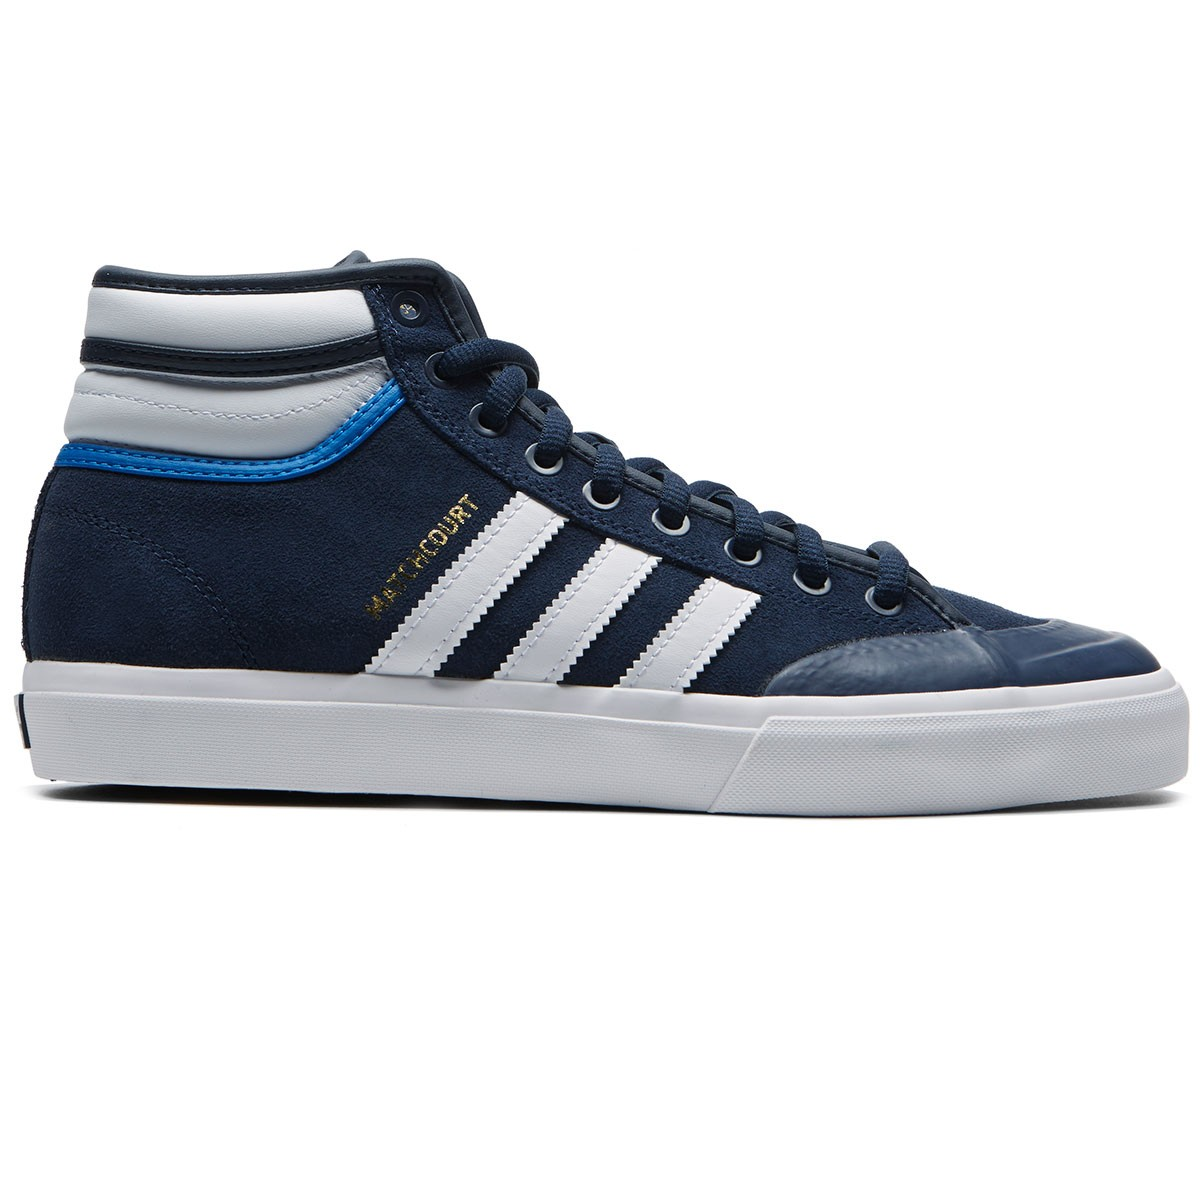 cbd94df48b Adidas Matchcourt High RX2 Shoes - Collegiate Navy White Bluebird - 8.0